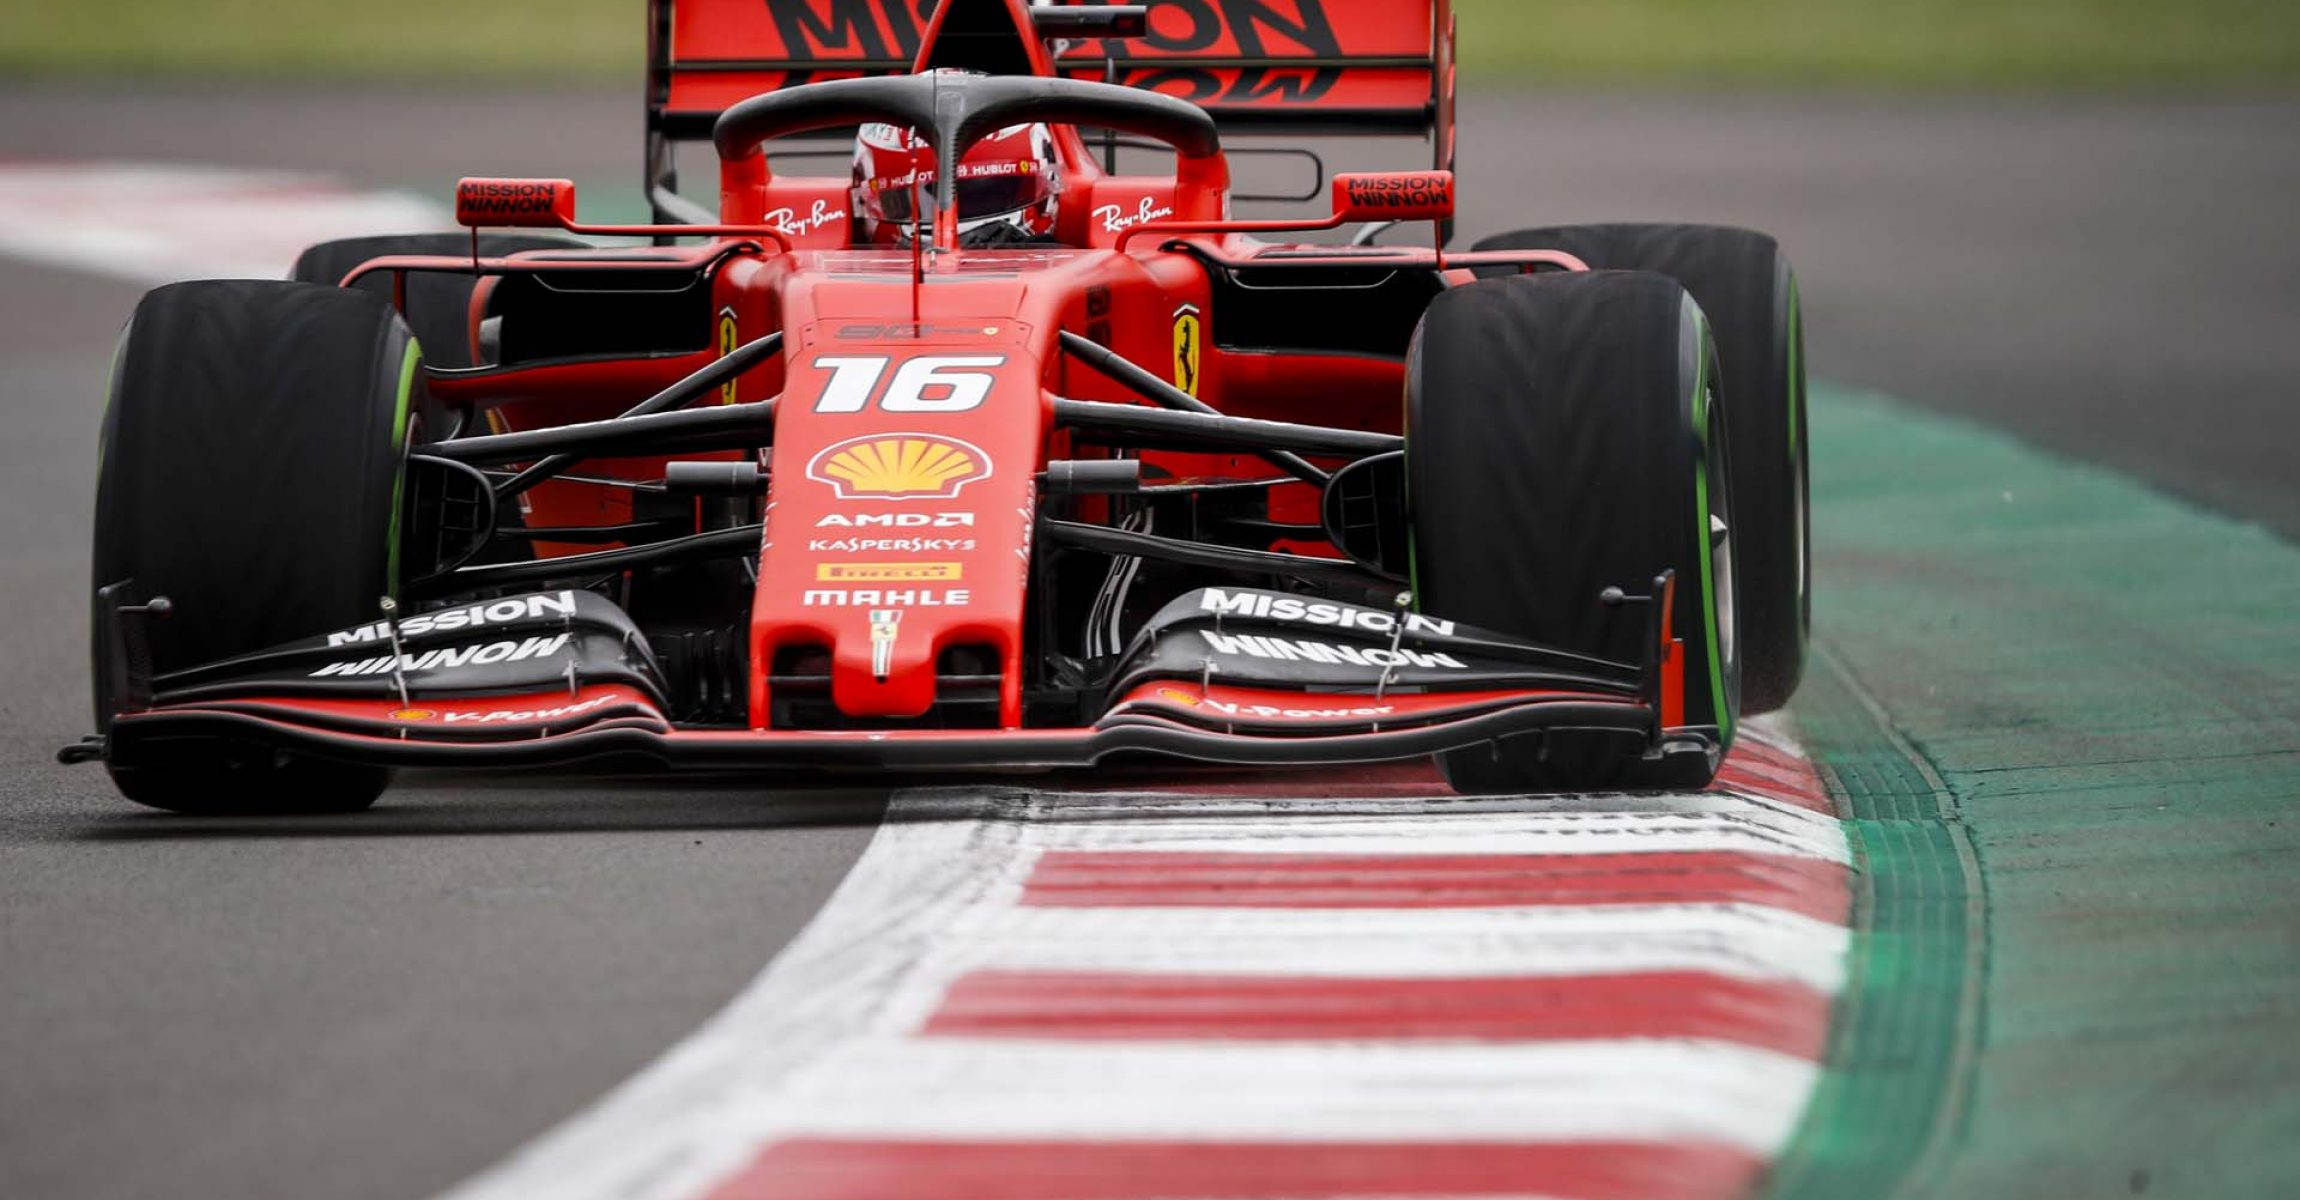 MEXICO CITY - OCTOBER 25: Charles Leclerc, Ferrari SF90 during the 2019 Formula One Mexican Grand Prix at Autodromo Hermanos Rodriguez, on October 25, 2019 in Mexico City, Mexico. (Photo by Joe Portlock / LAT Images)